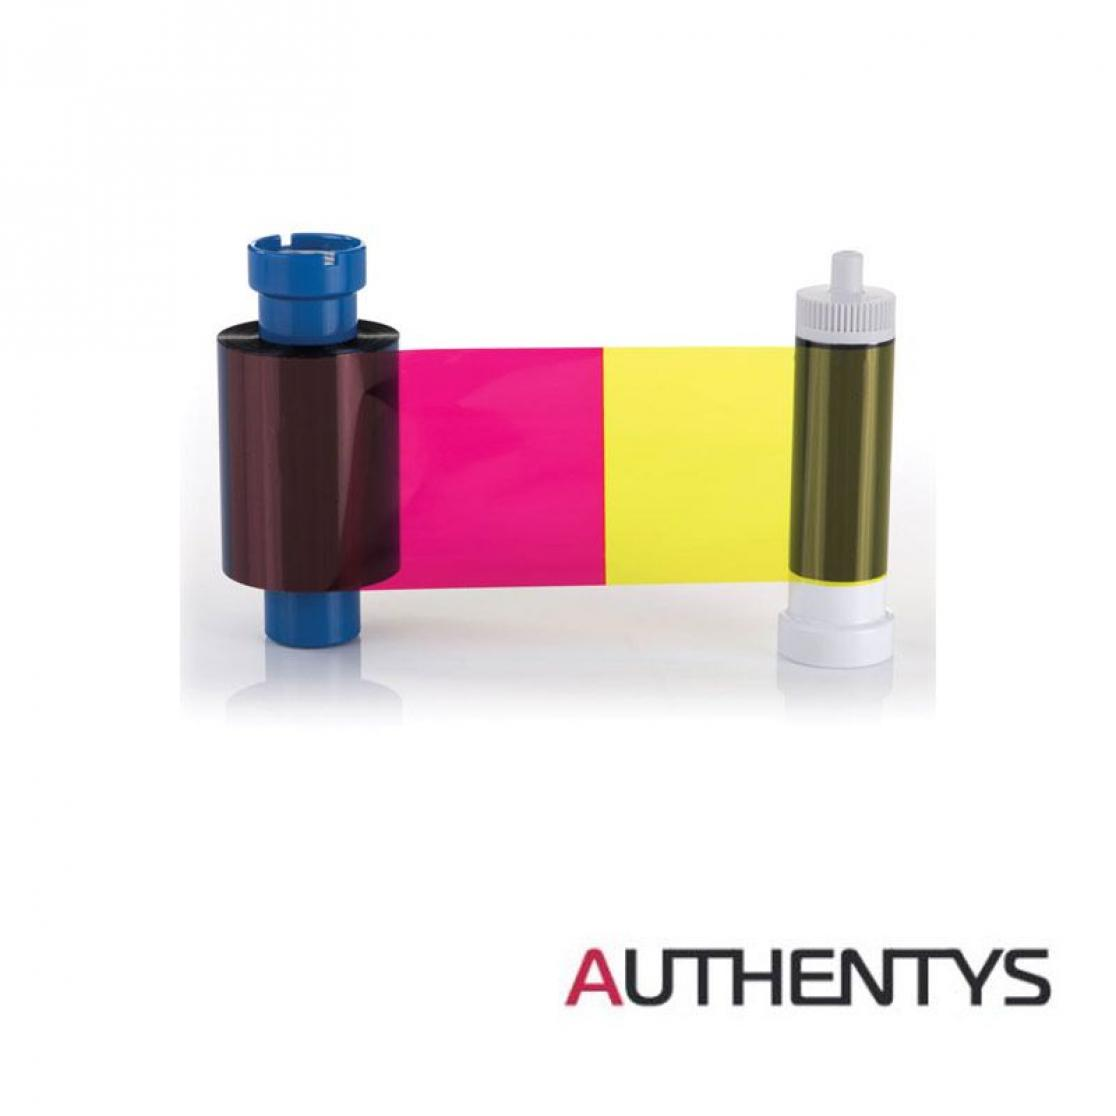 Colorful Film for card printer authentys Identbadge